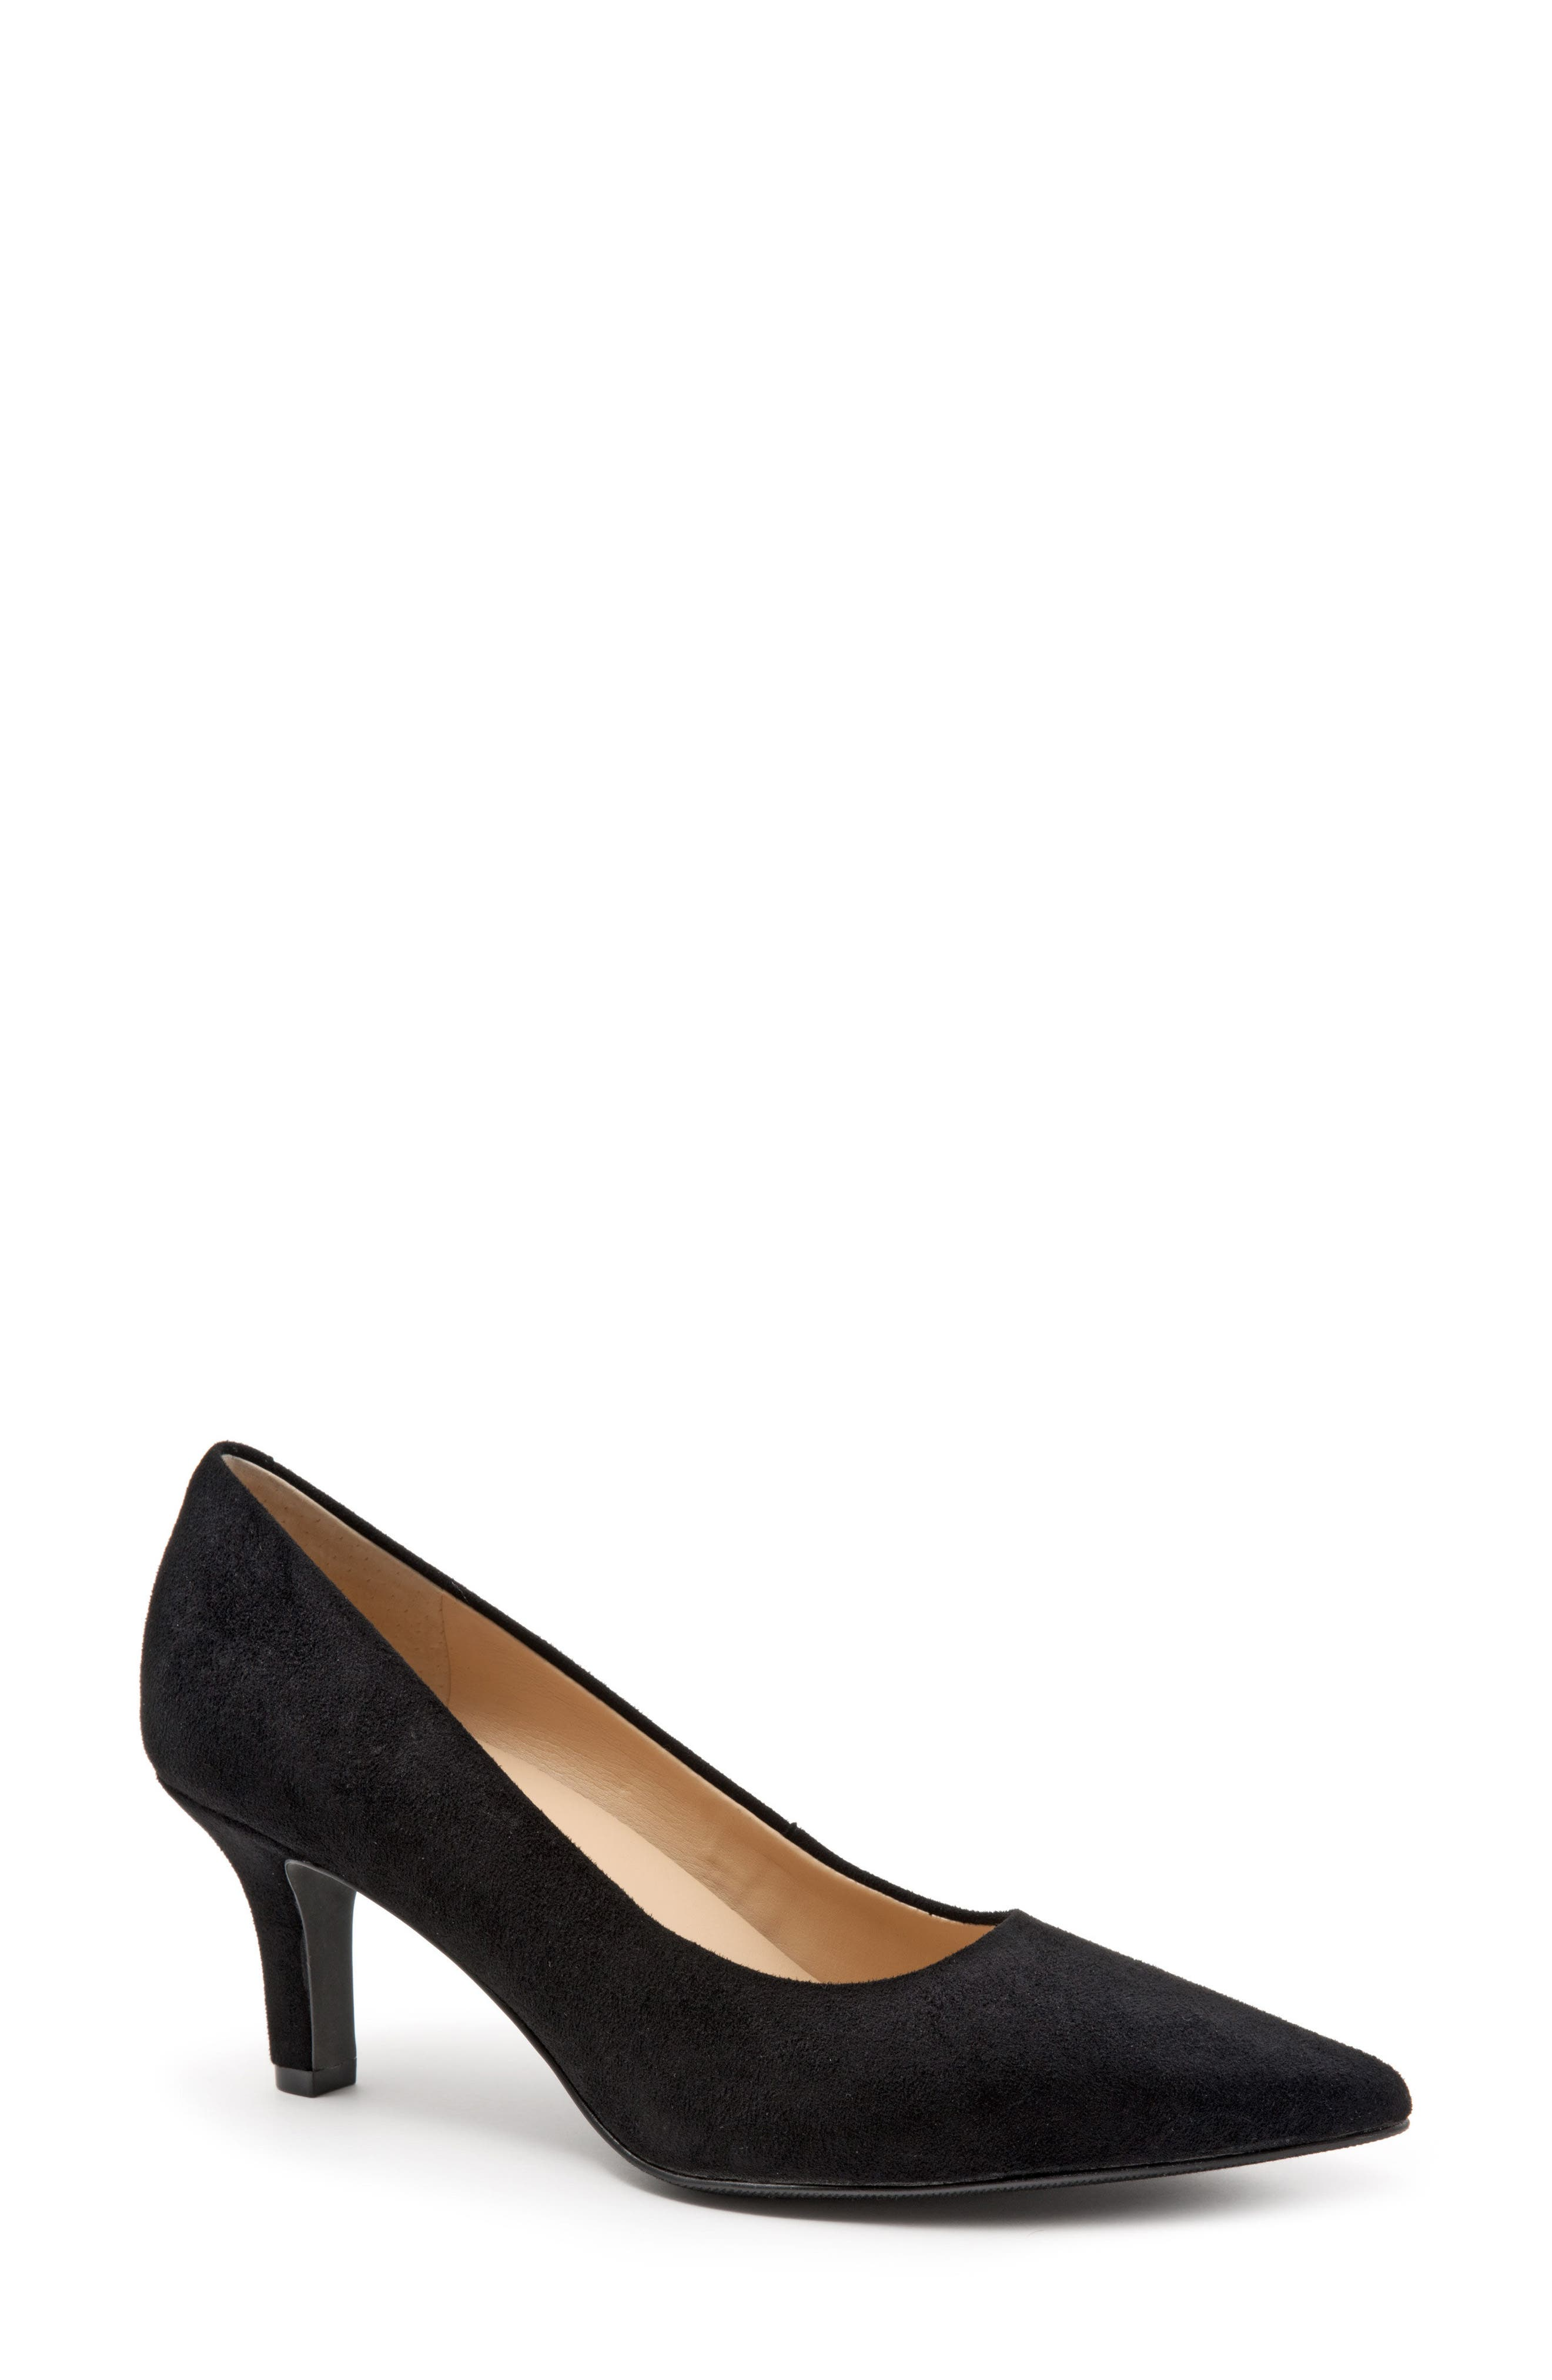 Noelle Pointy Toe Pump,                             Main thumbnail 1, color,                             BLACK FABRIC